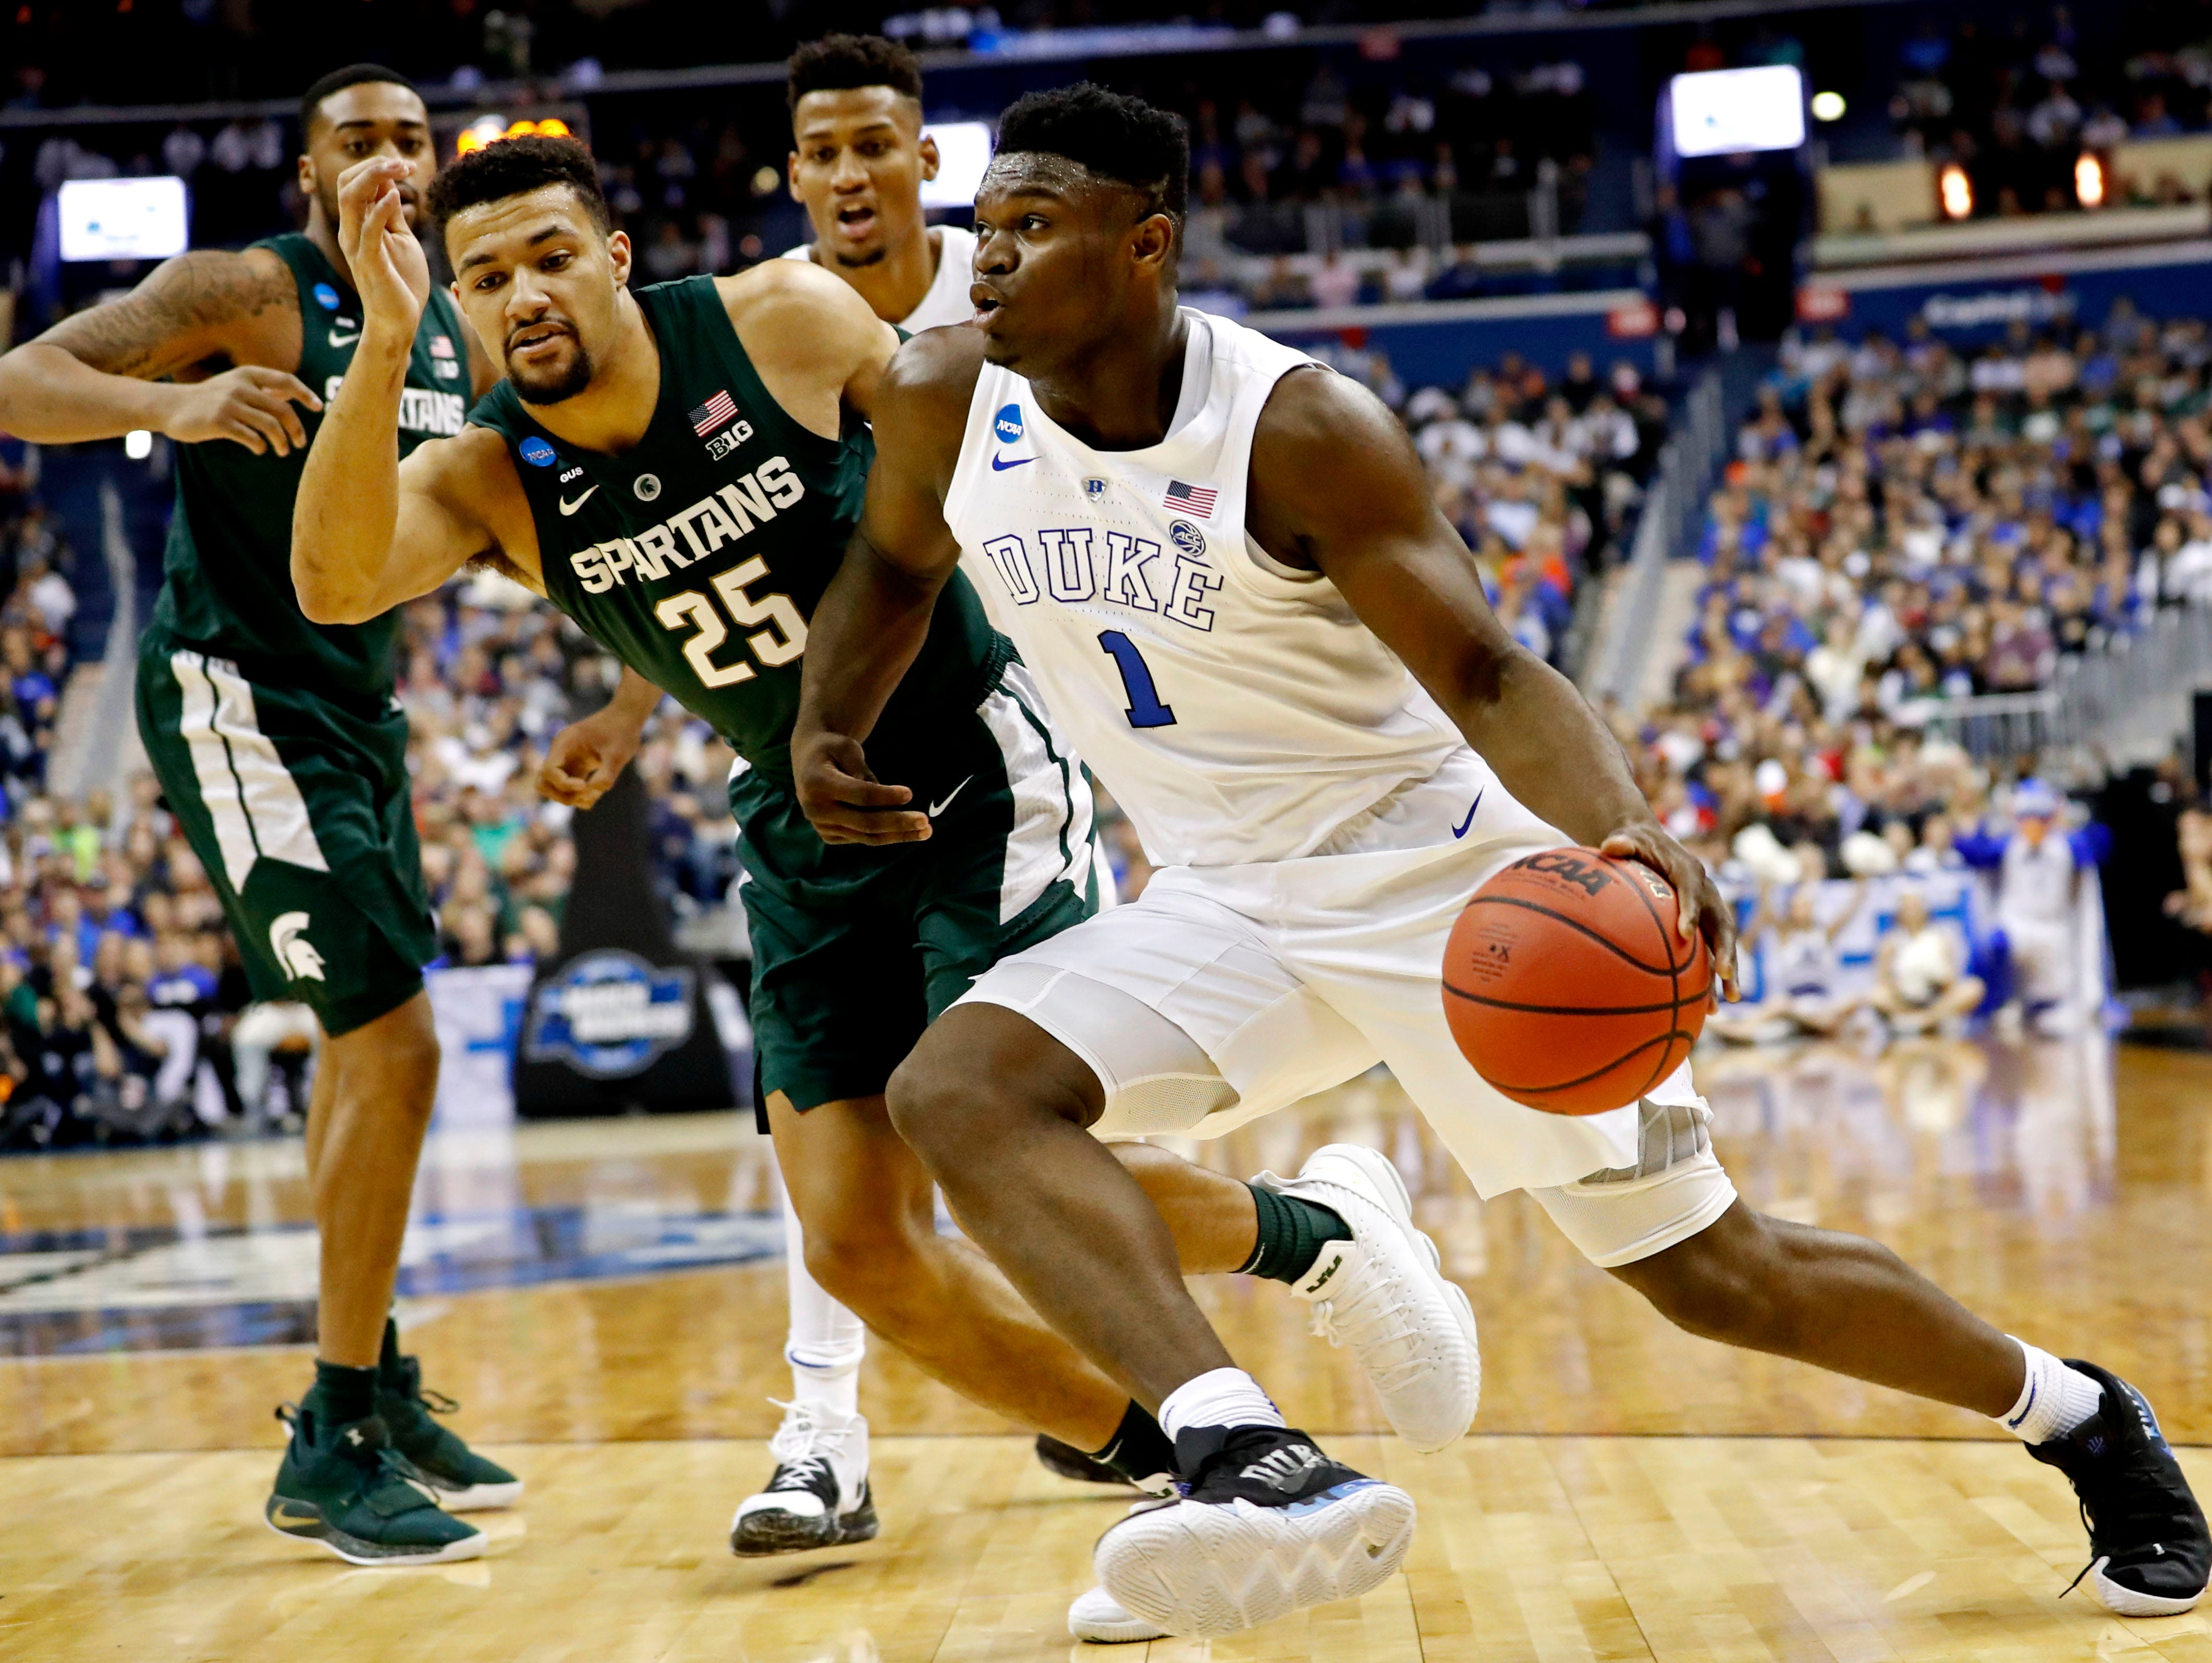 Duke Blue Devils forward Zion Williamson (1) drives to the basket against Michigan State Spartans forward Kenny Goins (25) during the first half in the championship game of the east regional of the 2019 NCAA Tournament at Capital One Arena.